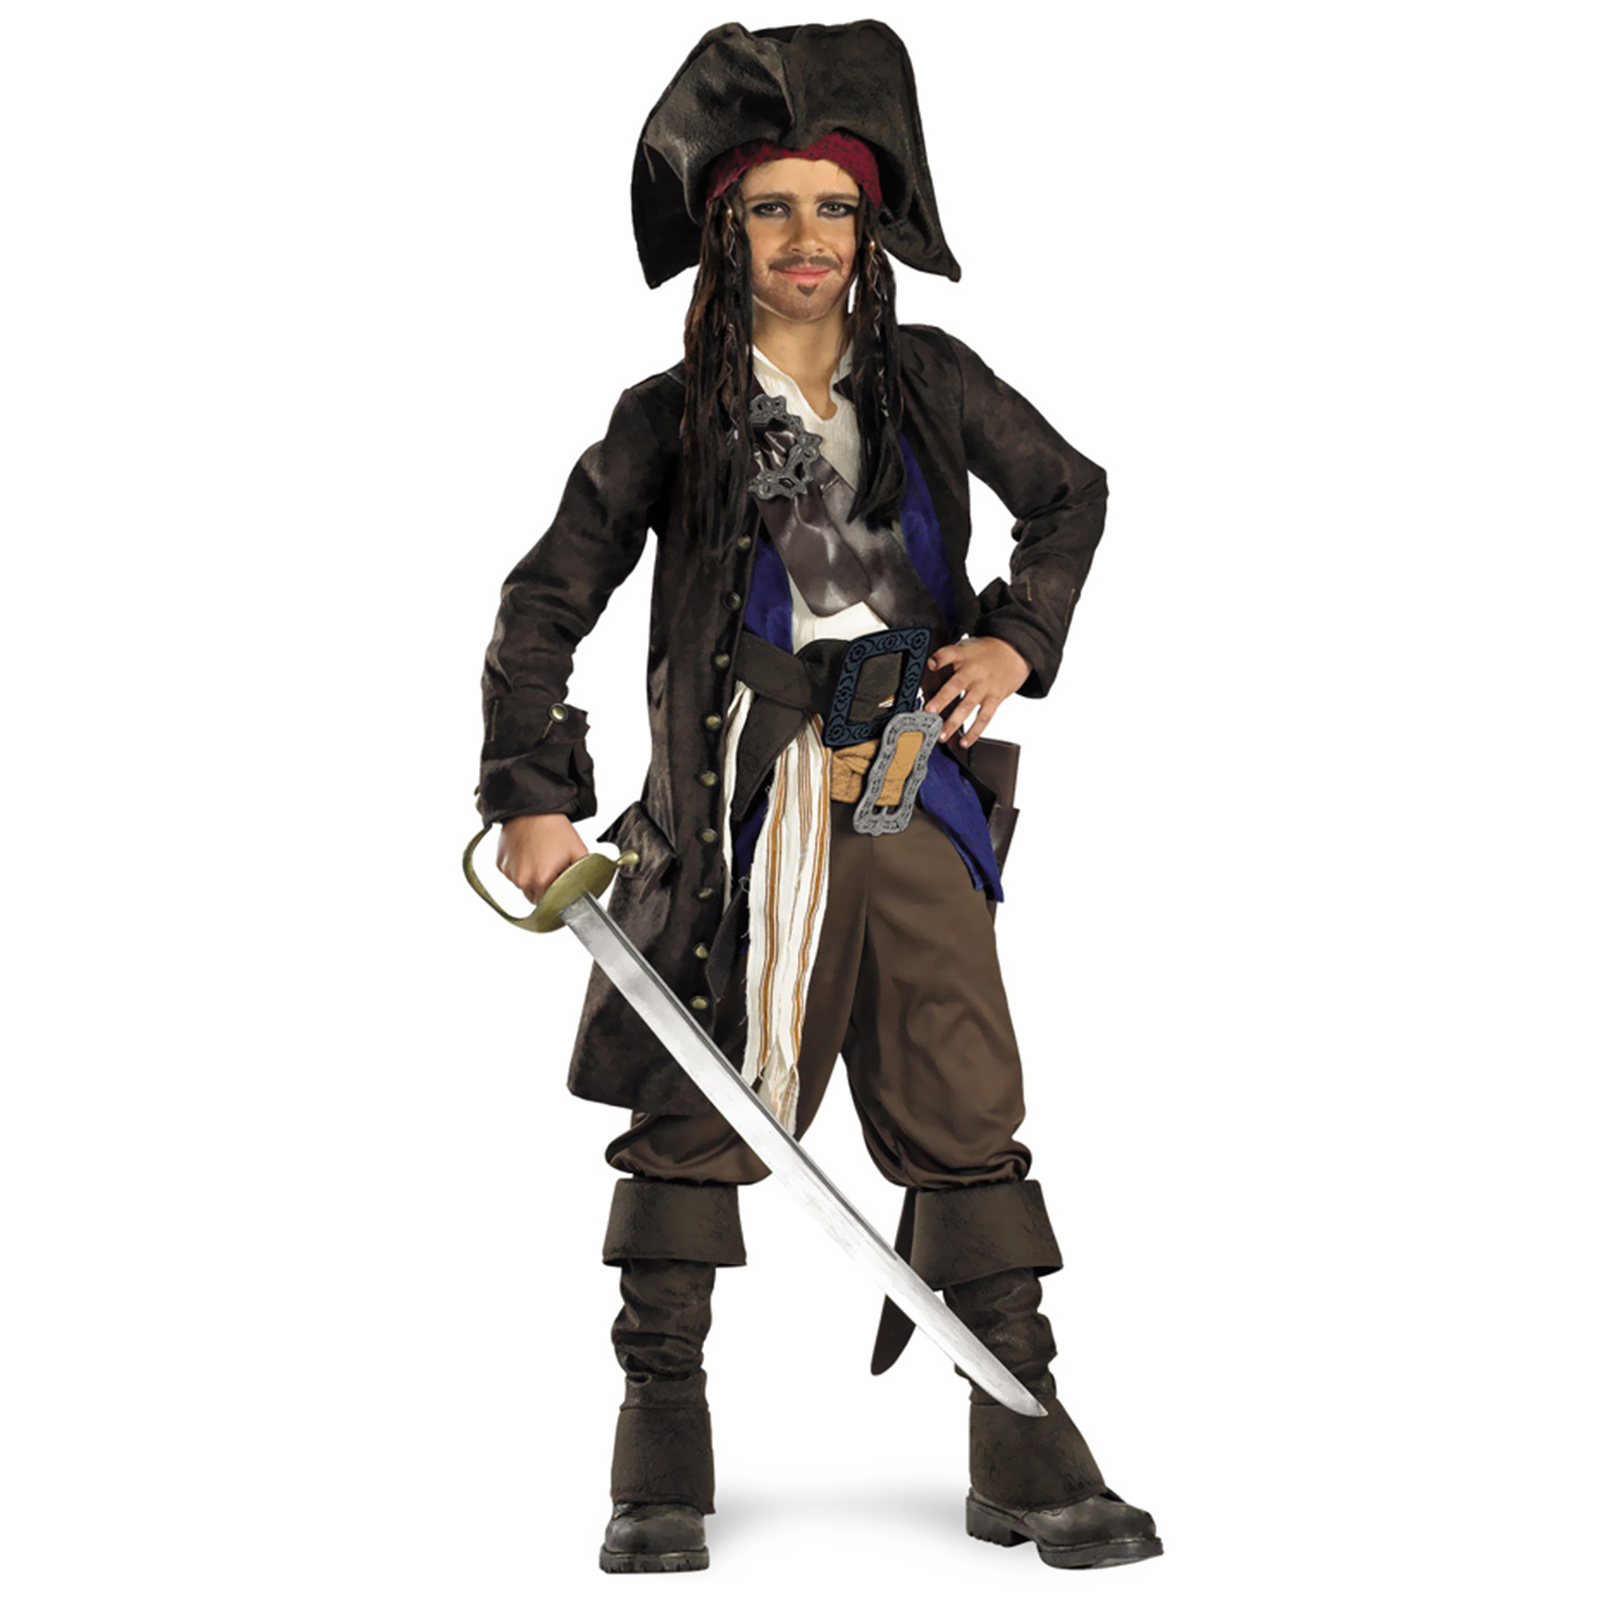 Diy Baby Girl Pirate Costume Land Pirates costumes are